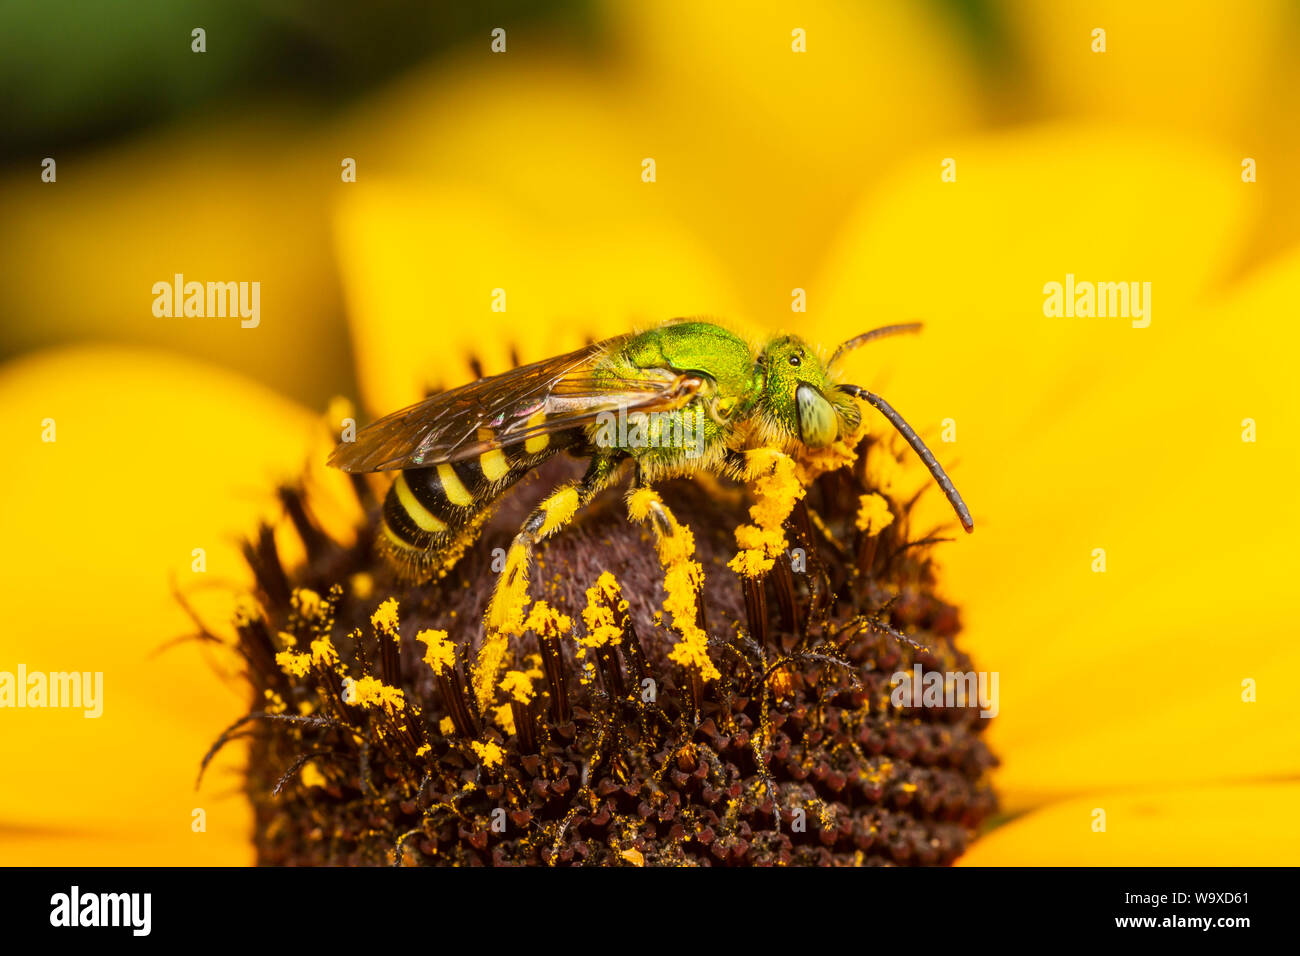 A male Bicolored Striped-Sweat Bee (Agapostemon virescens) collects nectar and pollen on a Black-eyed Susan flower. Stock Photo